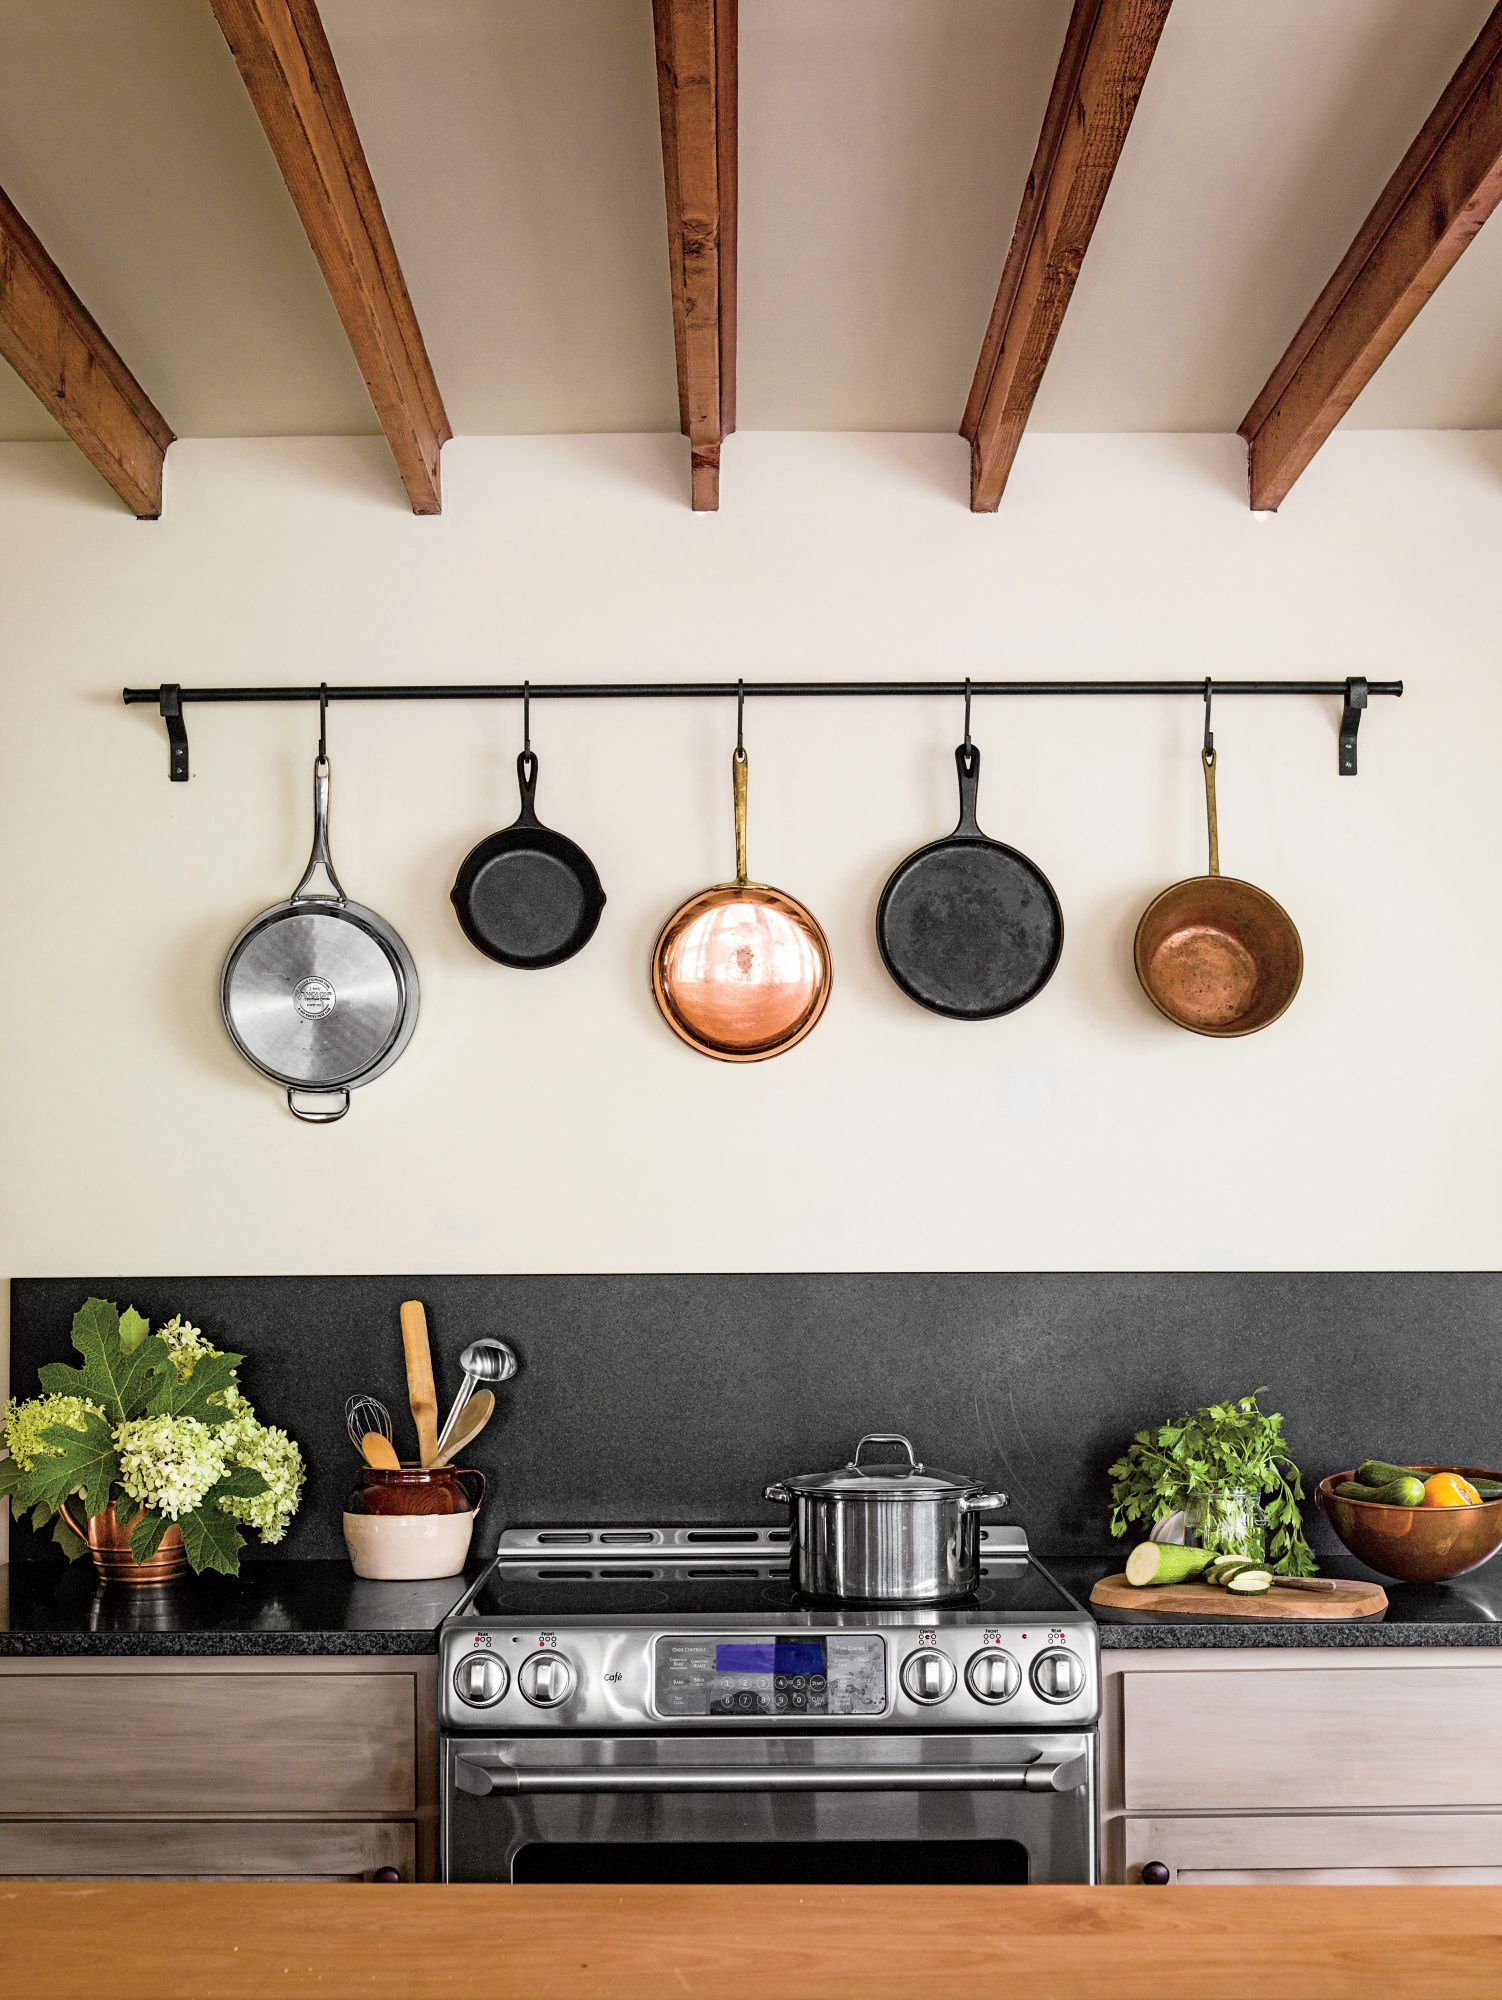 Hanging Pots Over Kitchen Range